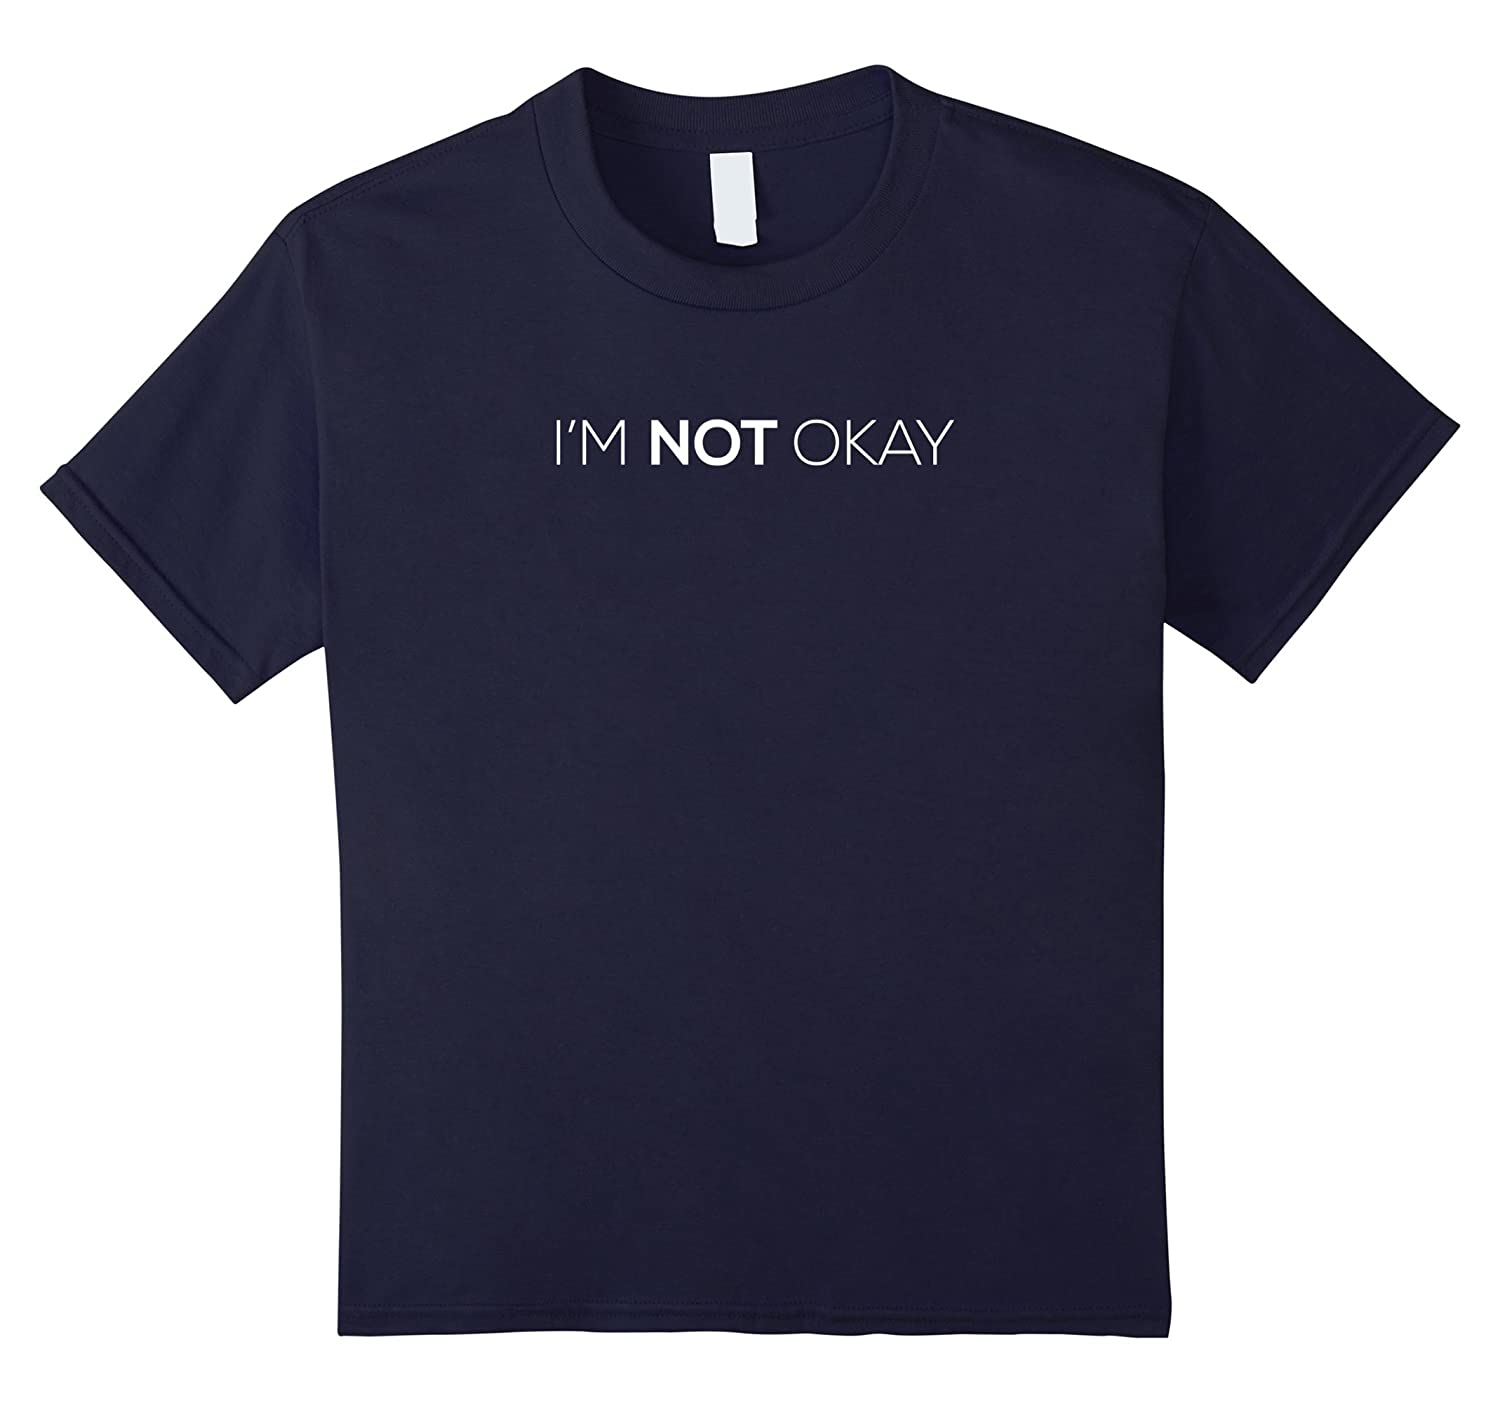 Mens Okay Shirt Small Black-Teechatpro